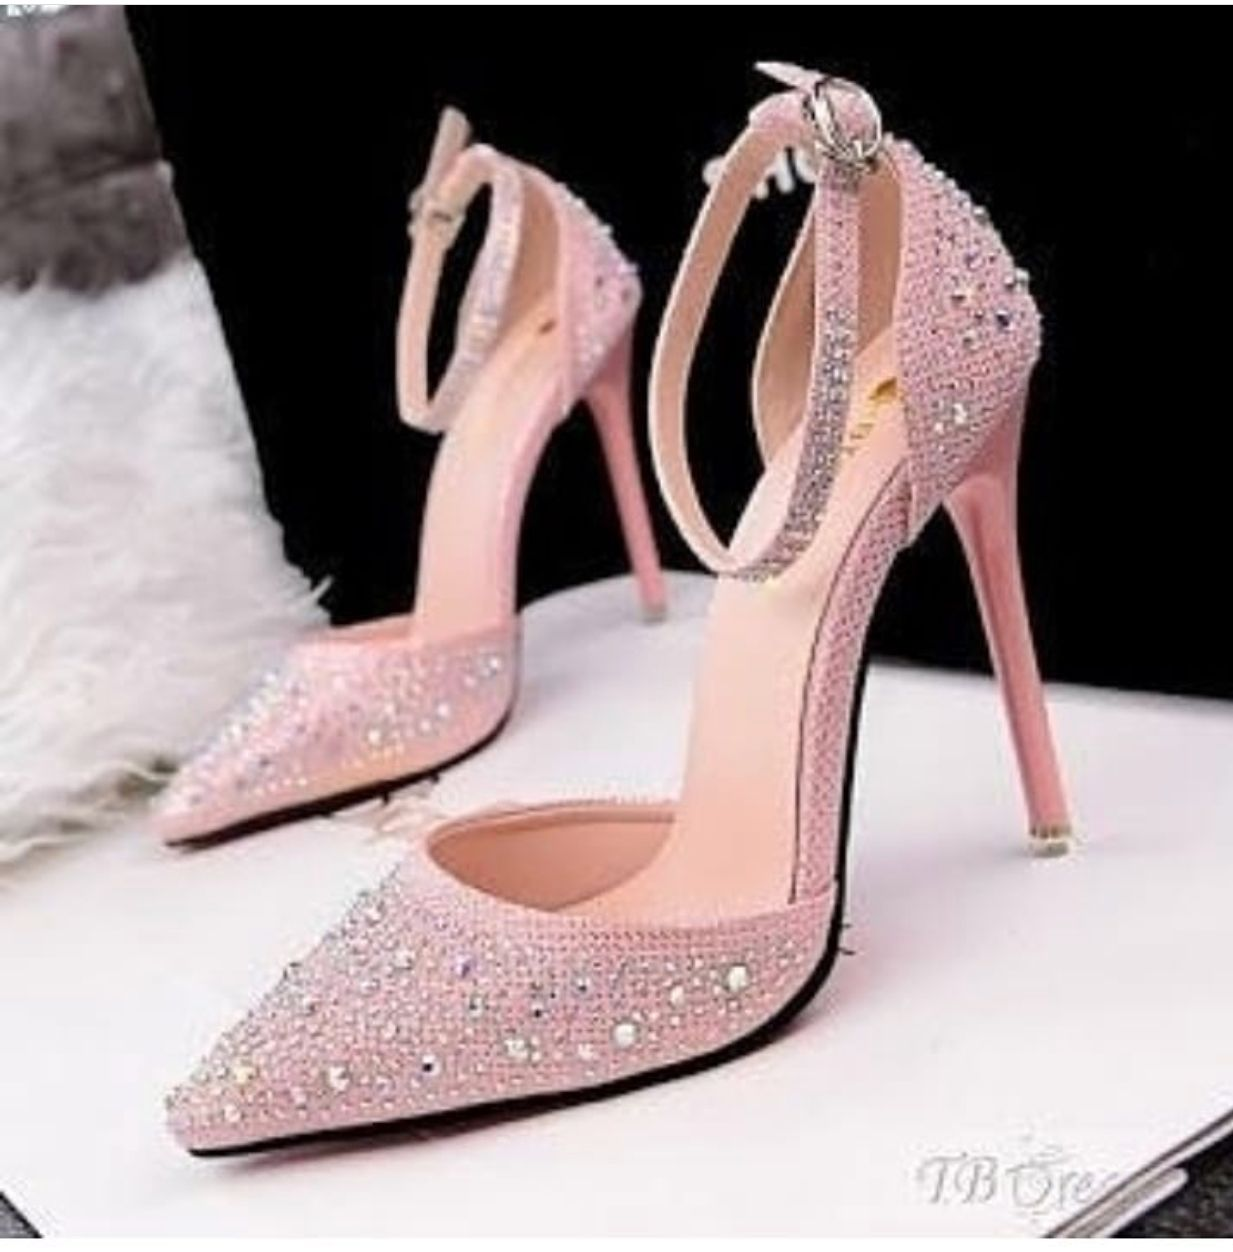 c7775b088ed ... High Heels Women Pumps Rhinestone Sweet Shallow Mouth Thin Hollow  ladies Wedding Shoes with heels. Pink Rhinestone Ankle Strap...Pretty